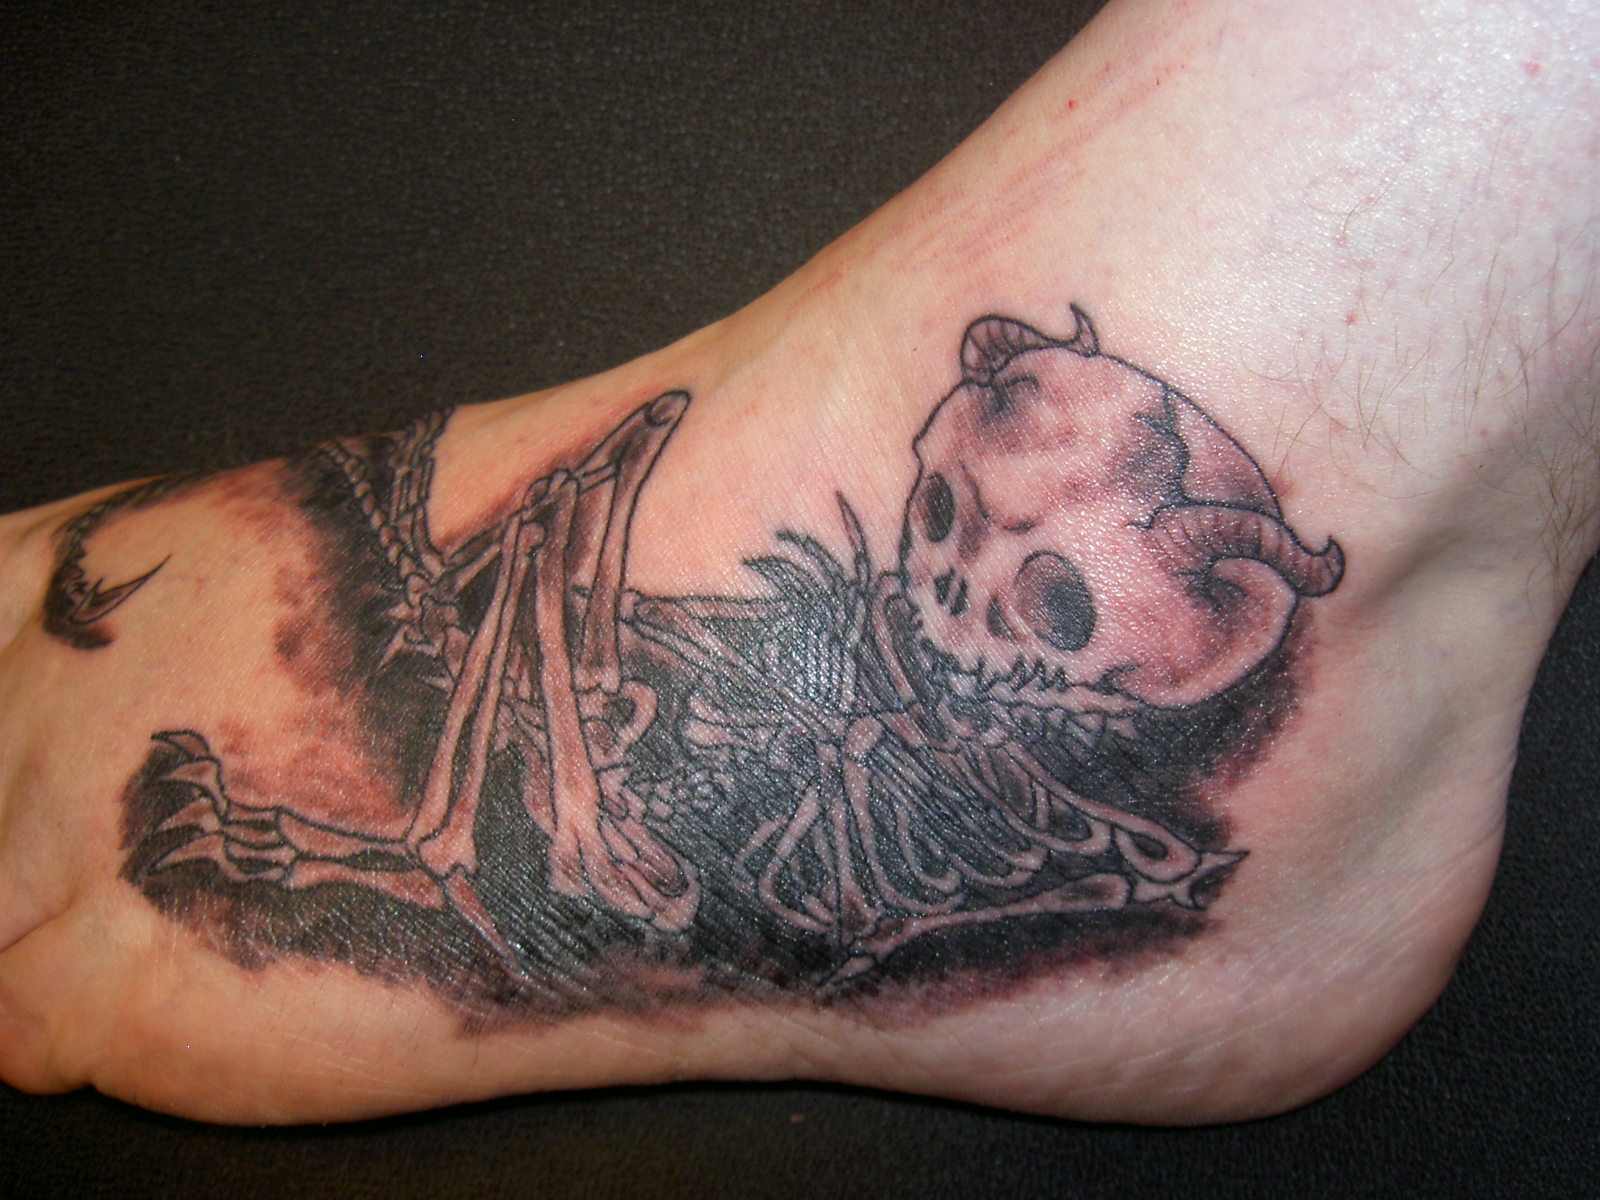 Skeleton on foot